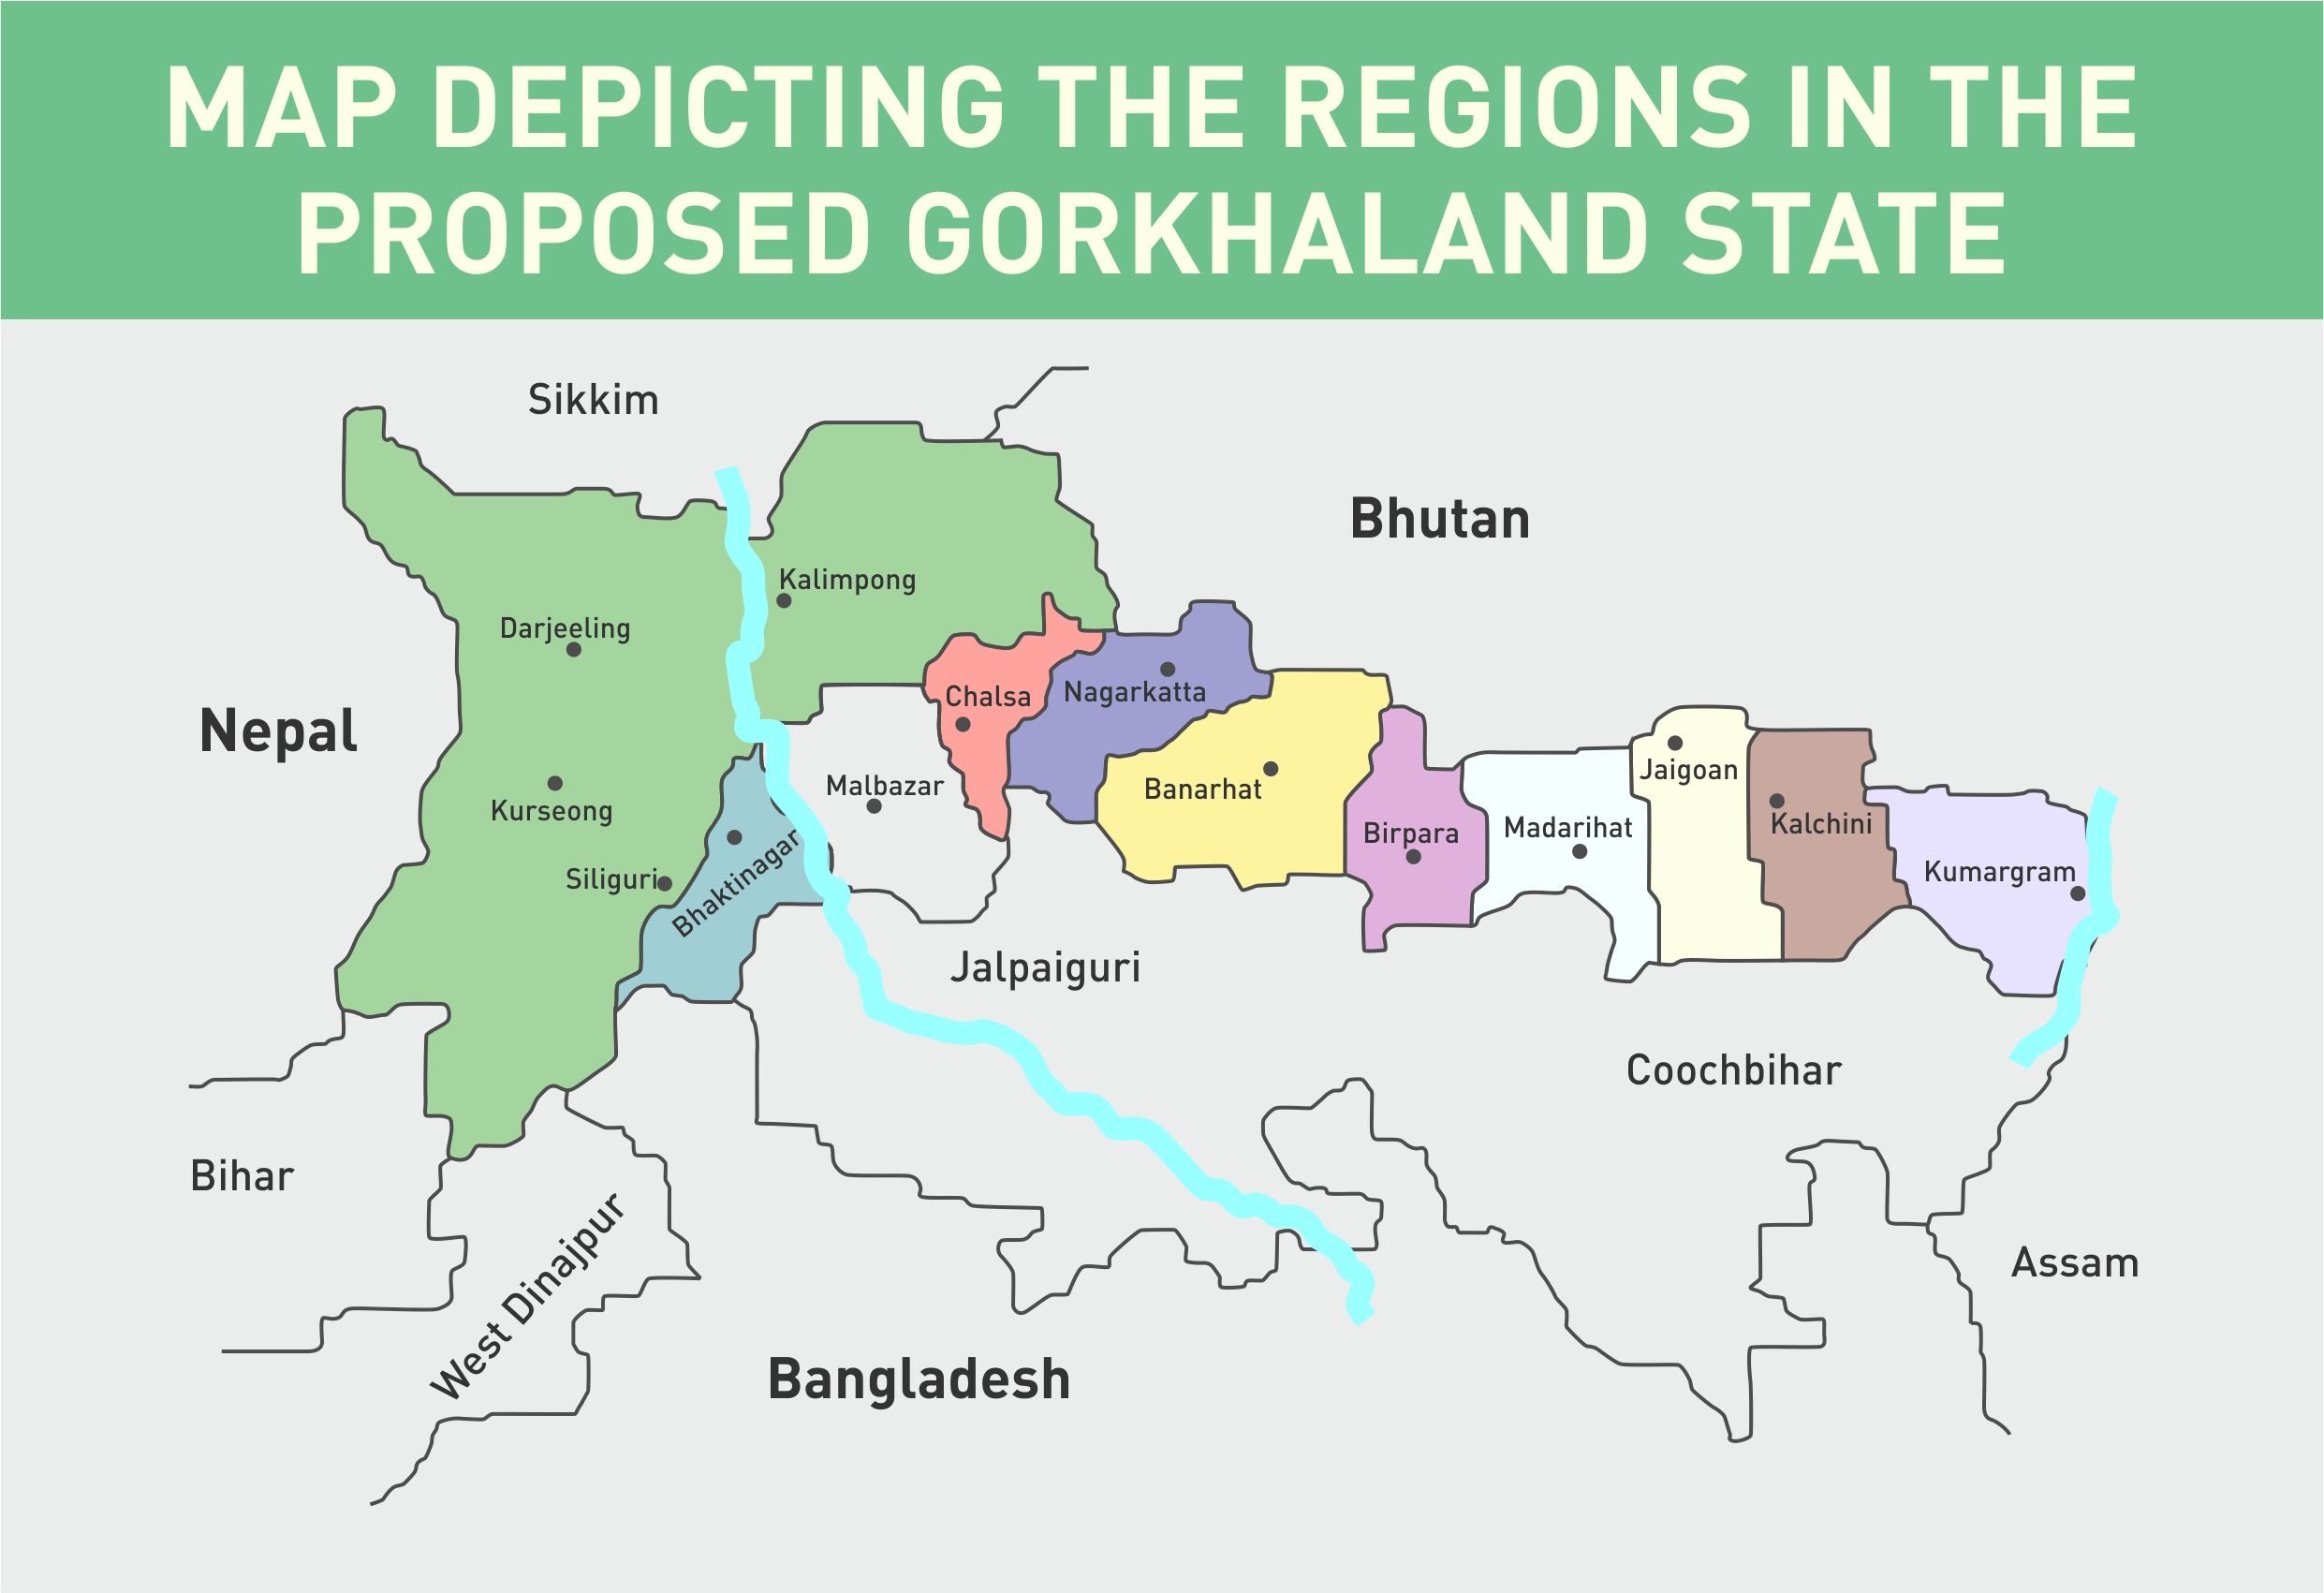 Regions in the proposed Gorkhaland State